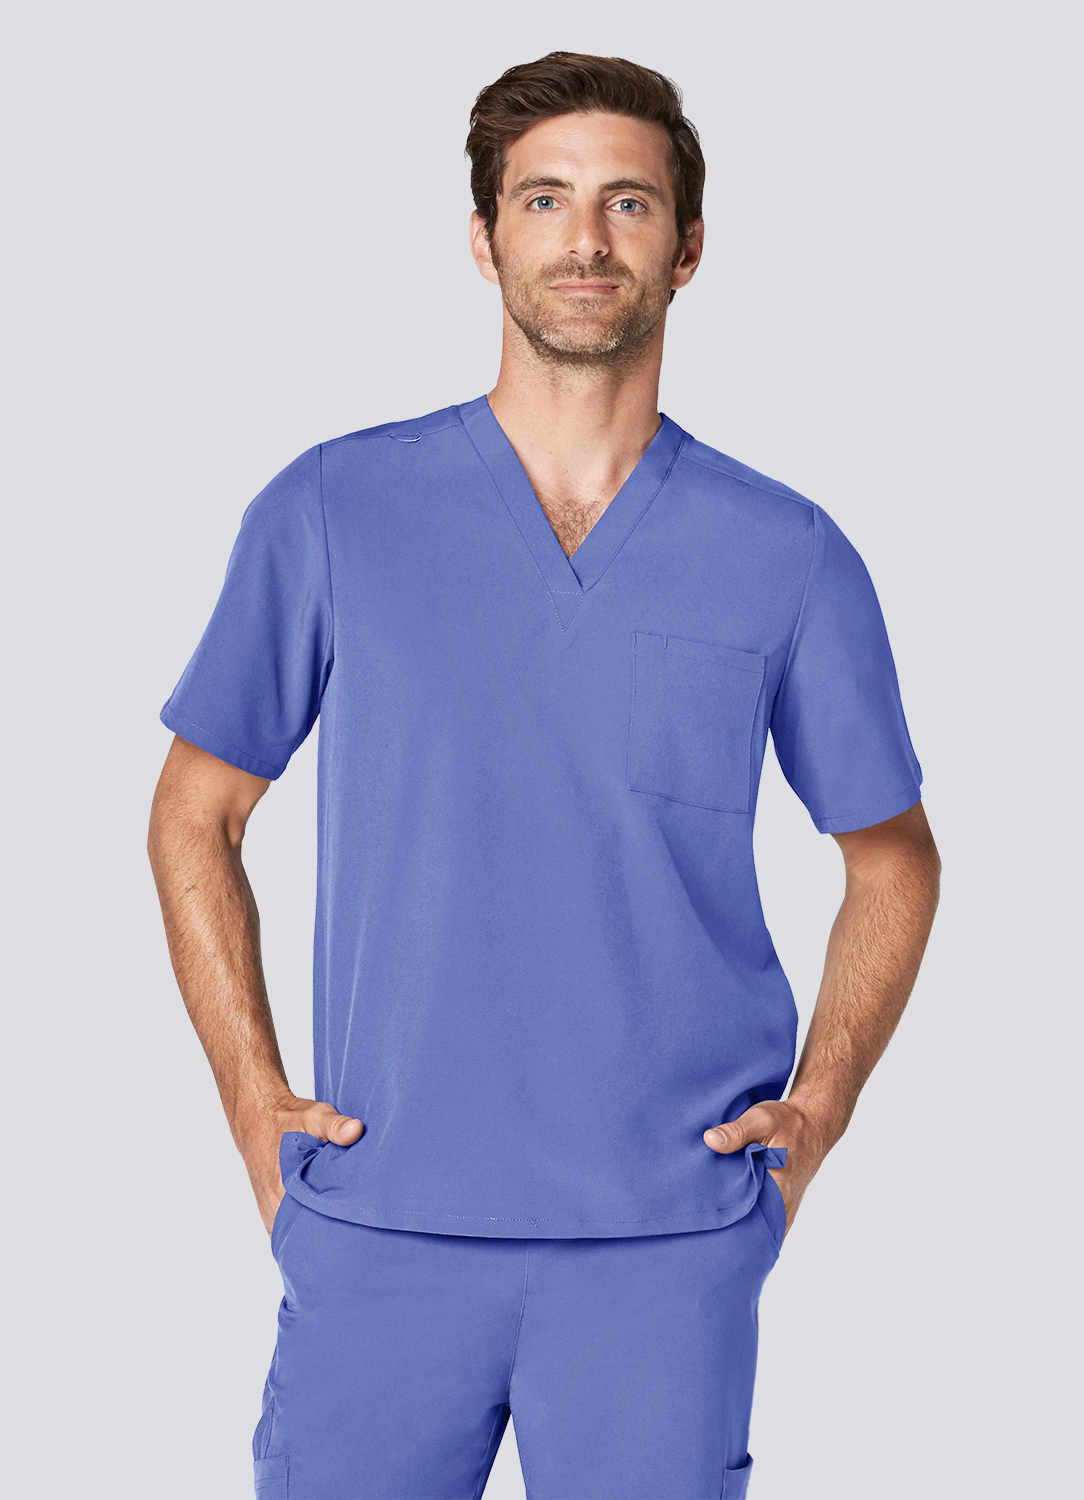 Men's Classic V-Neck Top